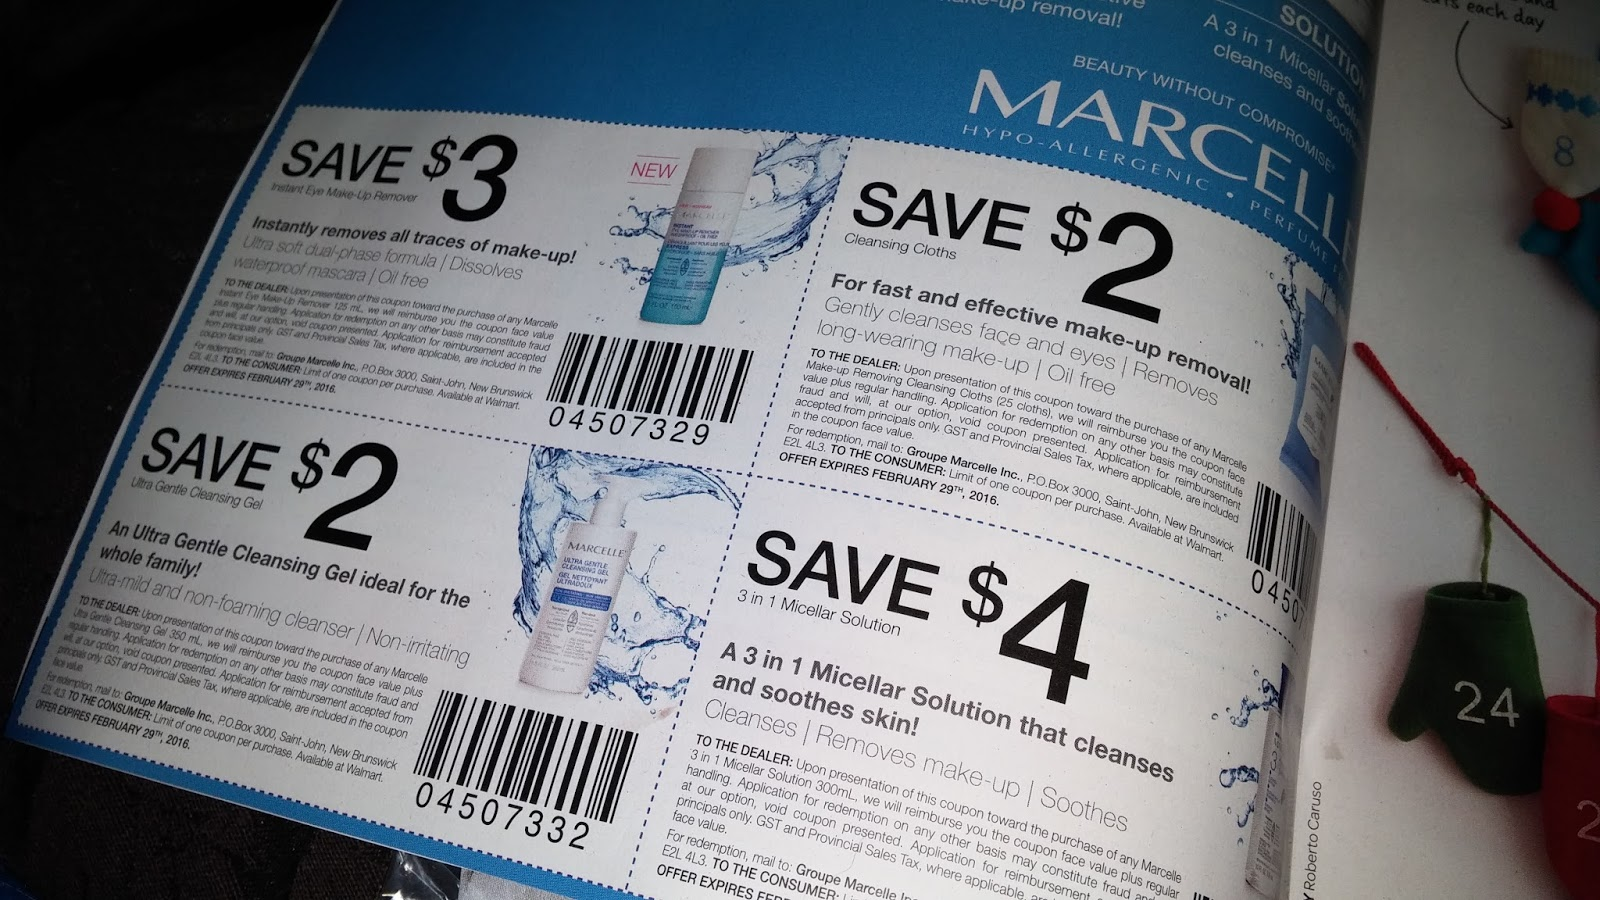 L'oreal eye makeup remover coupons -  The Live Better Magazine In Walmart S This Month Have Some Good Marcelle 3 Off The Coupon Mugeek Vidalondon Maybelline Makeup Remover